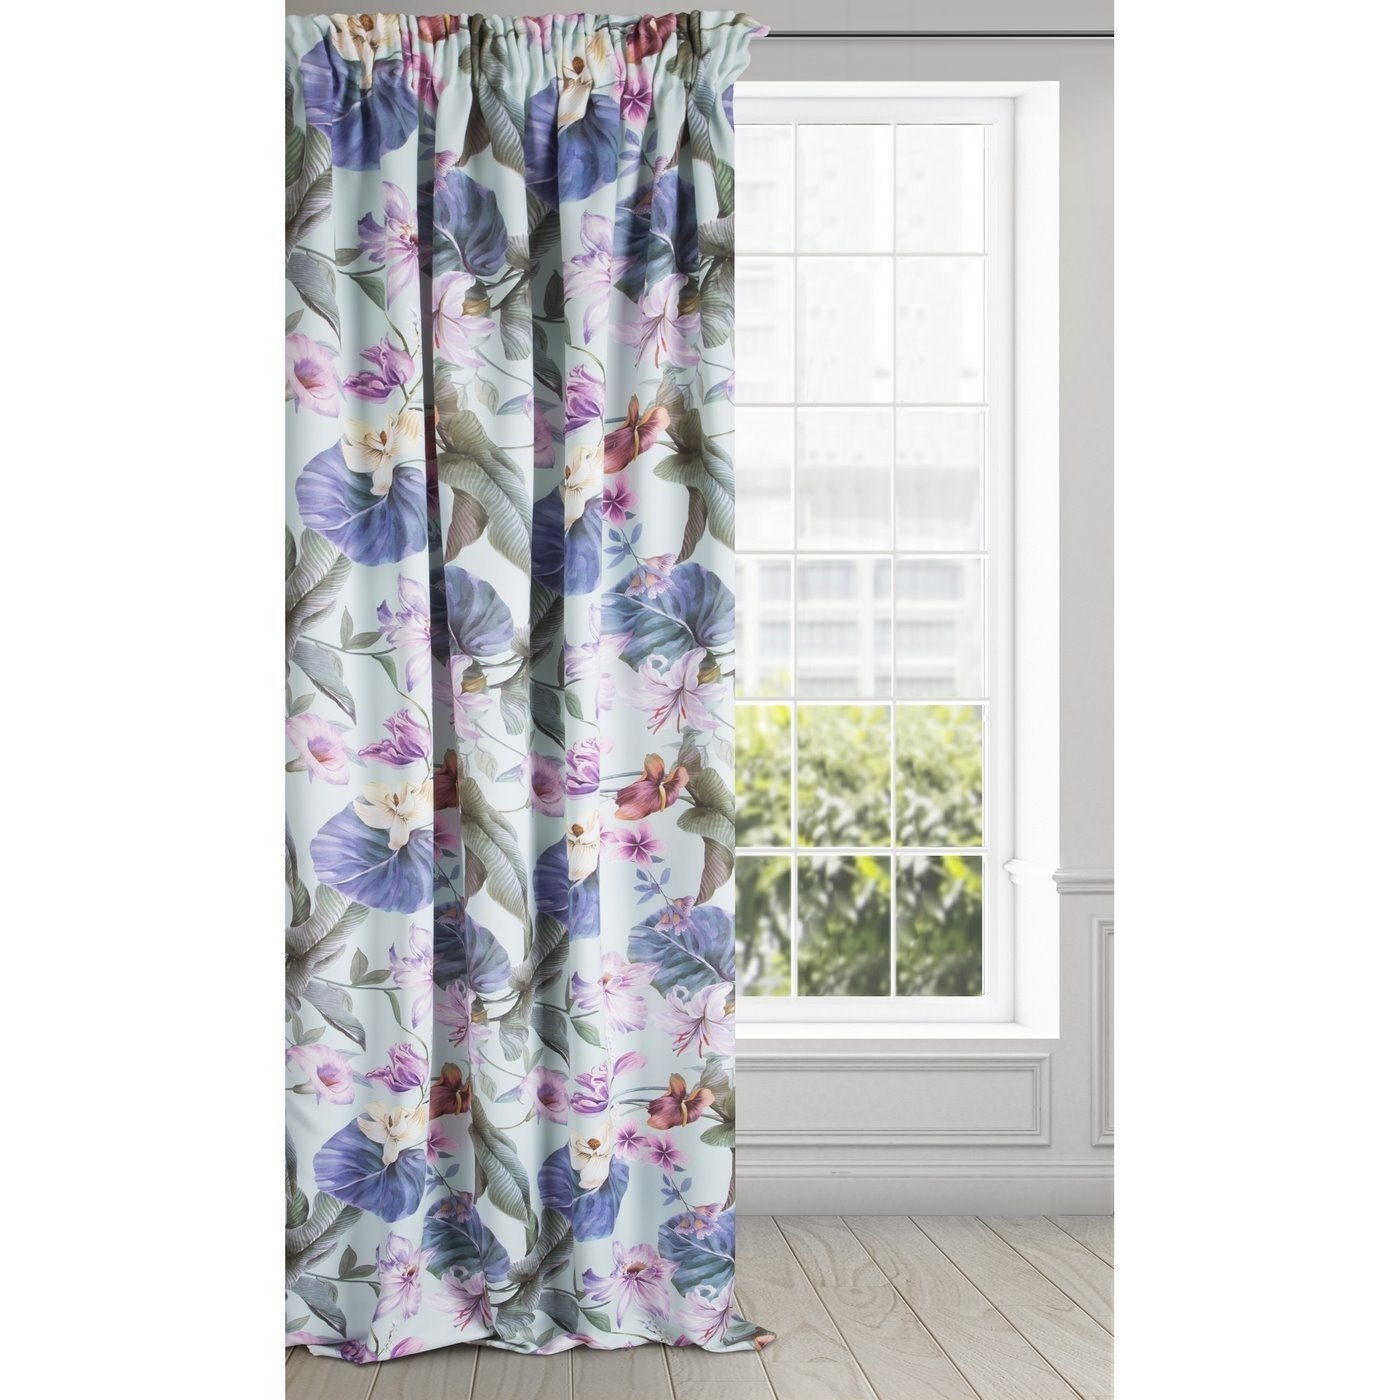 Draperie Blackout Alia Multicolor / Violet, 140 x 270 cm, 1 bucata imagine